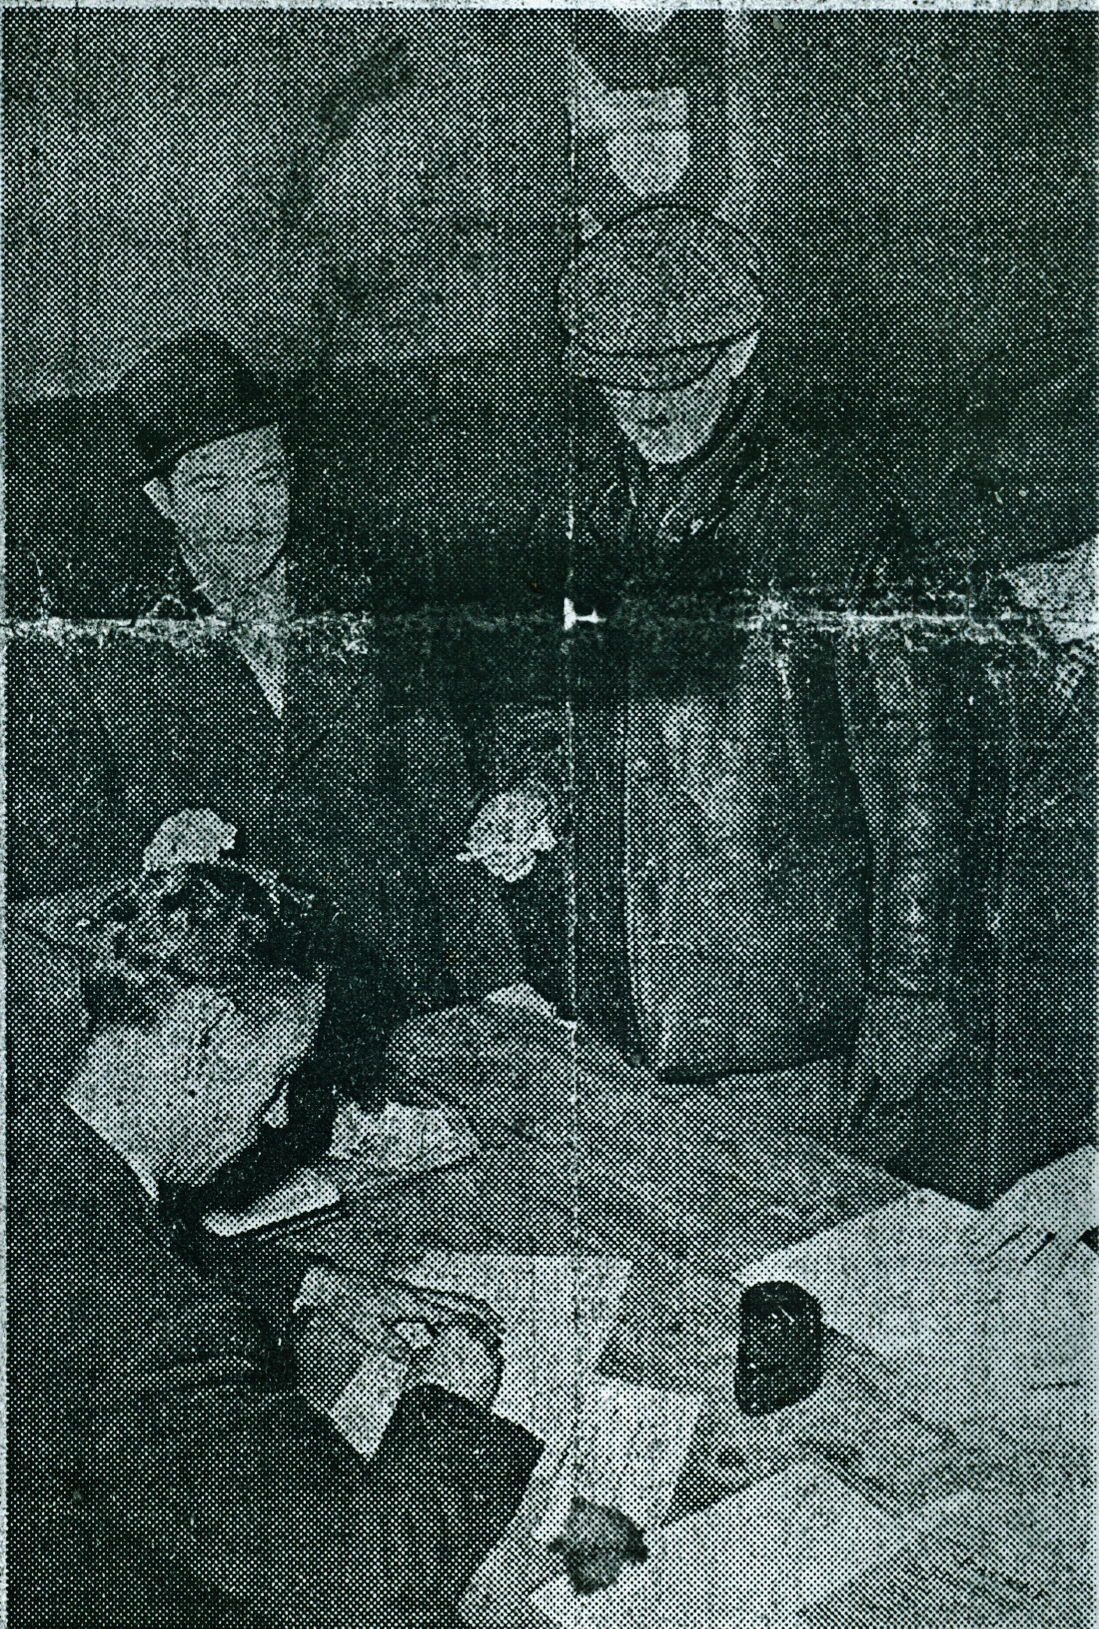 Deloro Election 1947, Percy Gray, Dickson, Michael.J Corrigan, C.R. Quinn